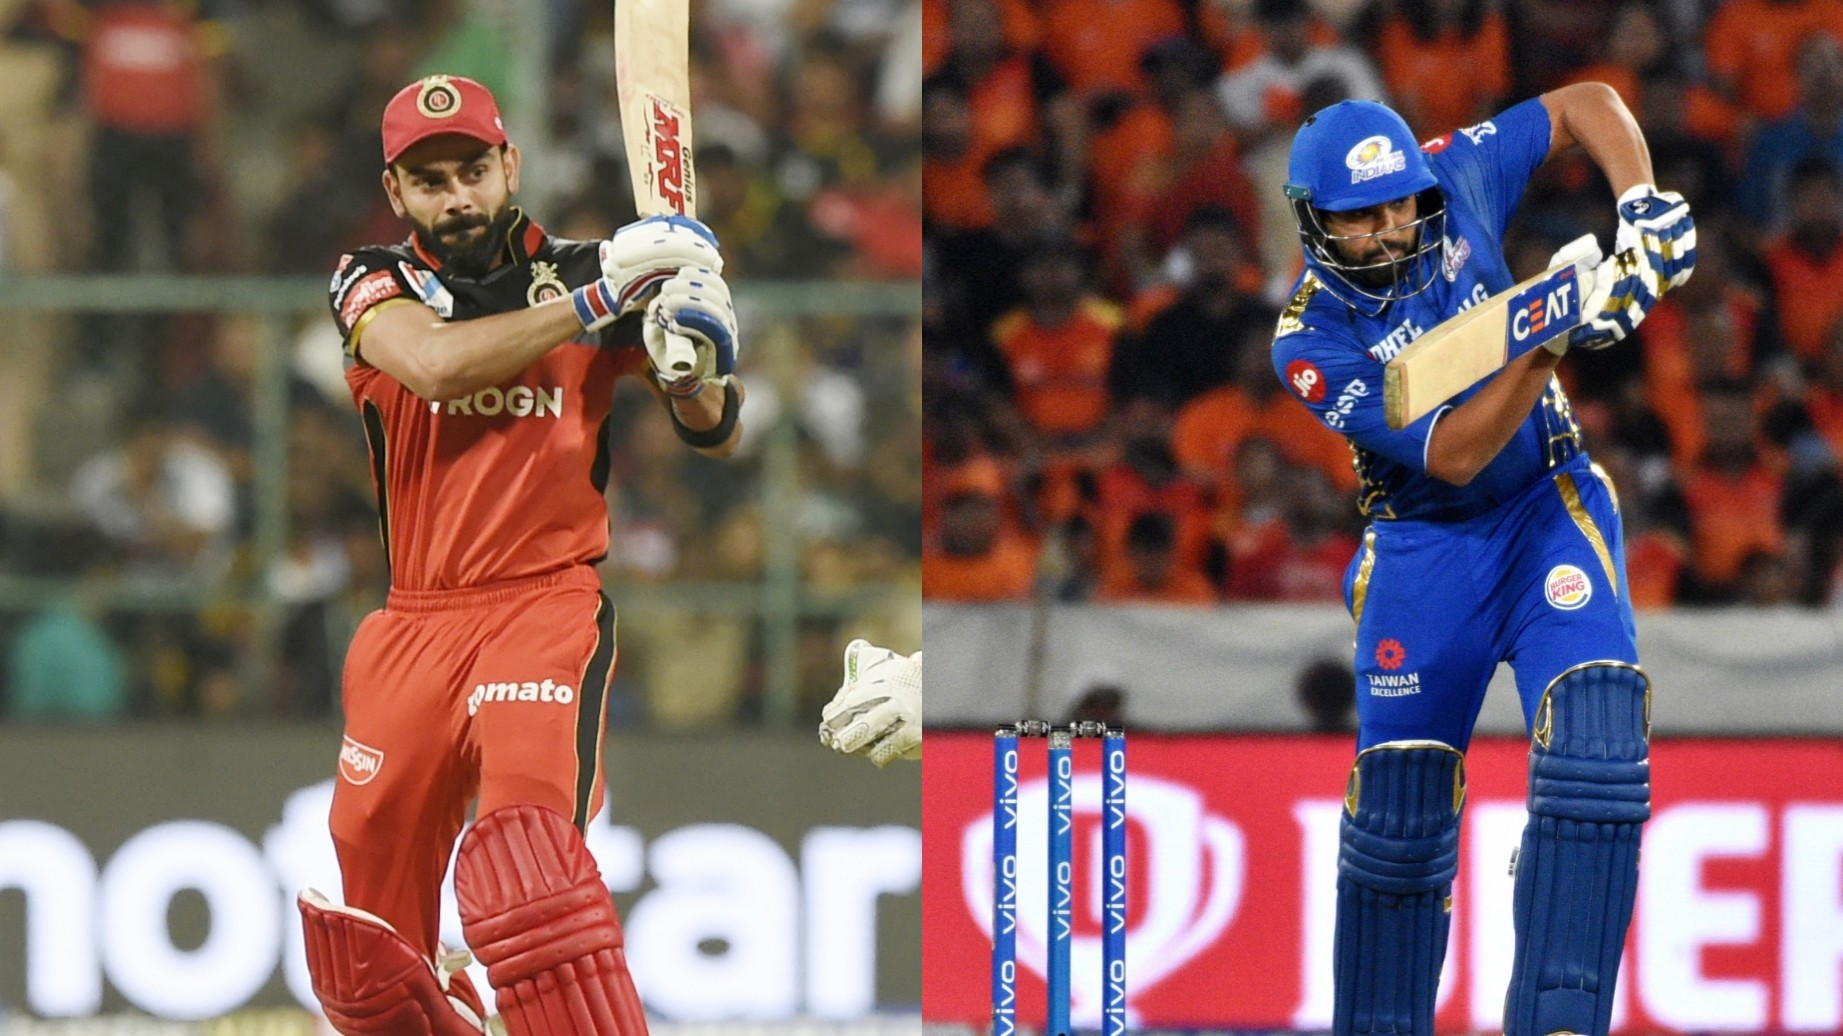 IPL 2019: Match 31, MI v RCB - MI opt to have a bowl at Wankhede